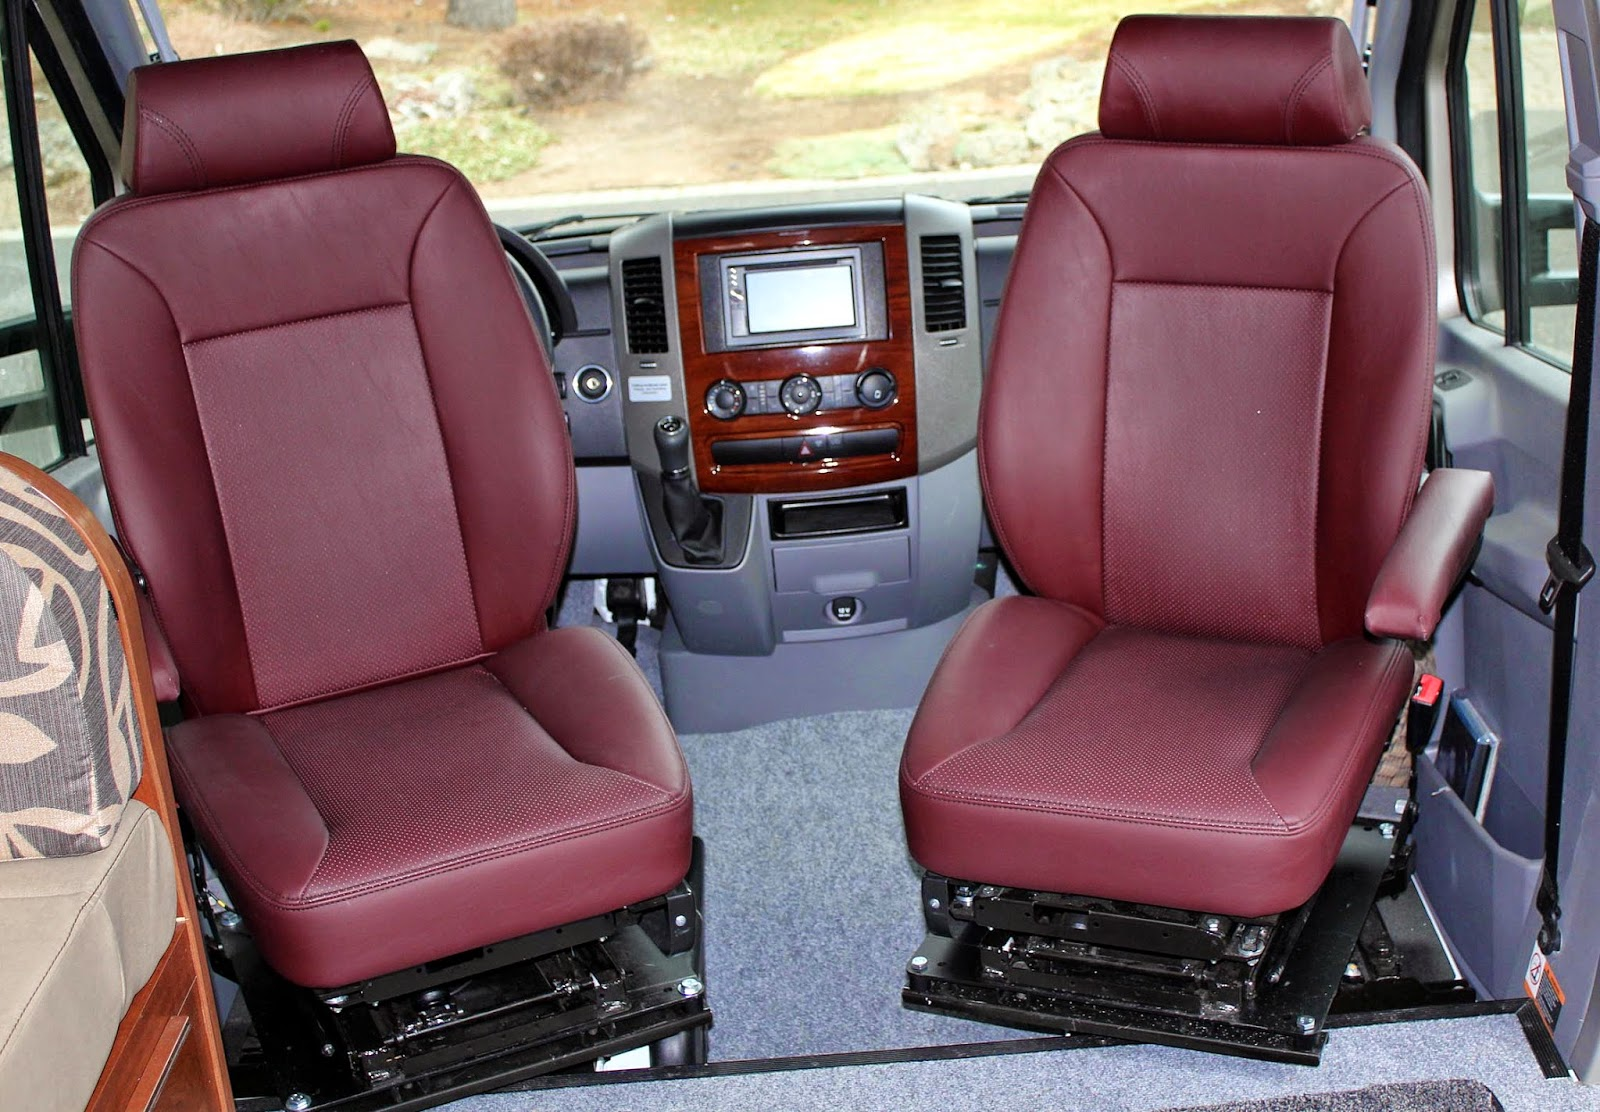 Swivel Chair Mercedes Sprinter Hanging Kit Seat Upgrade